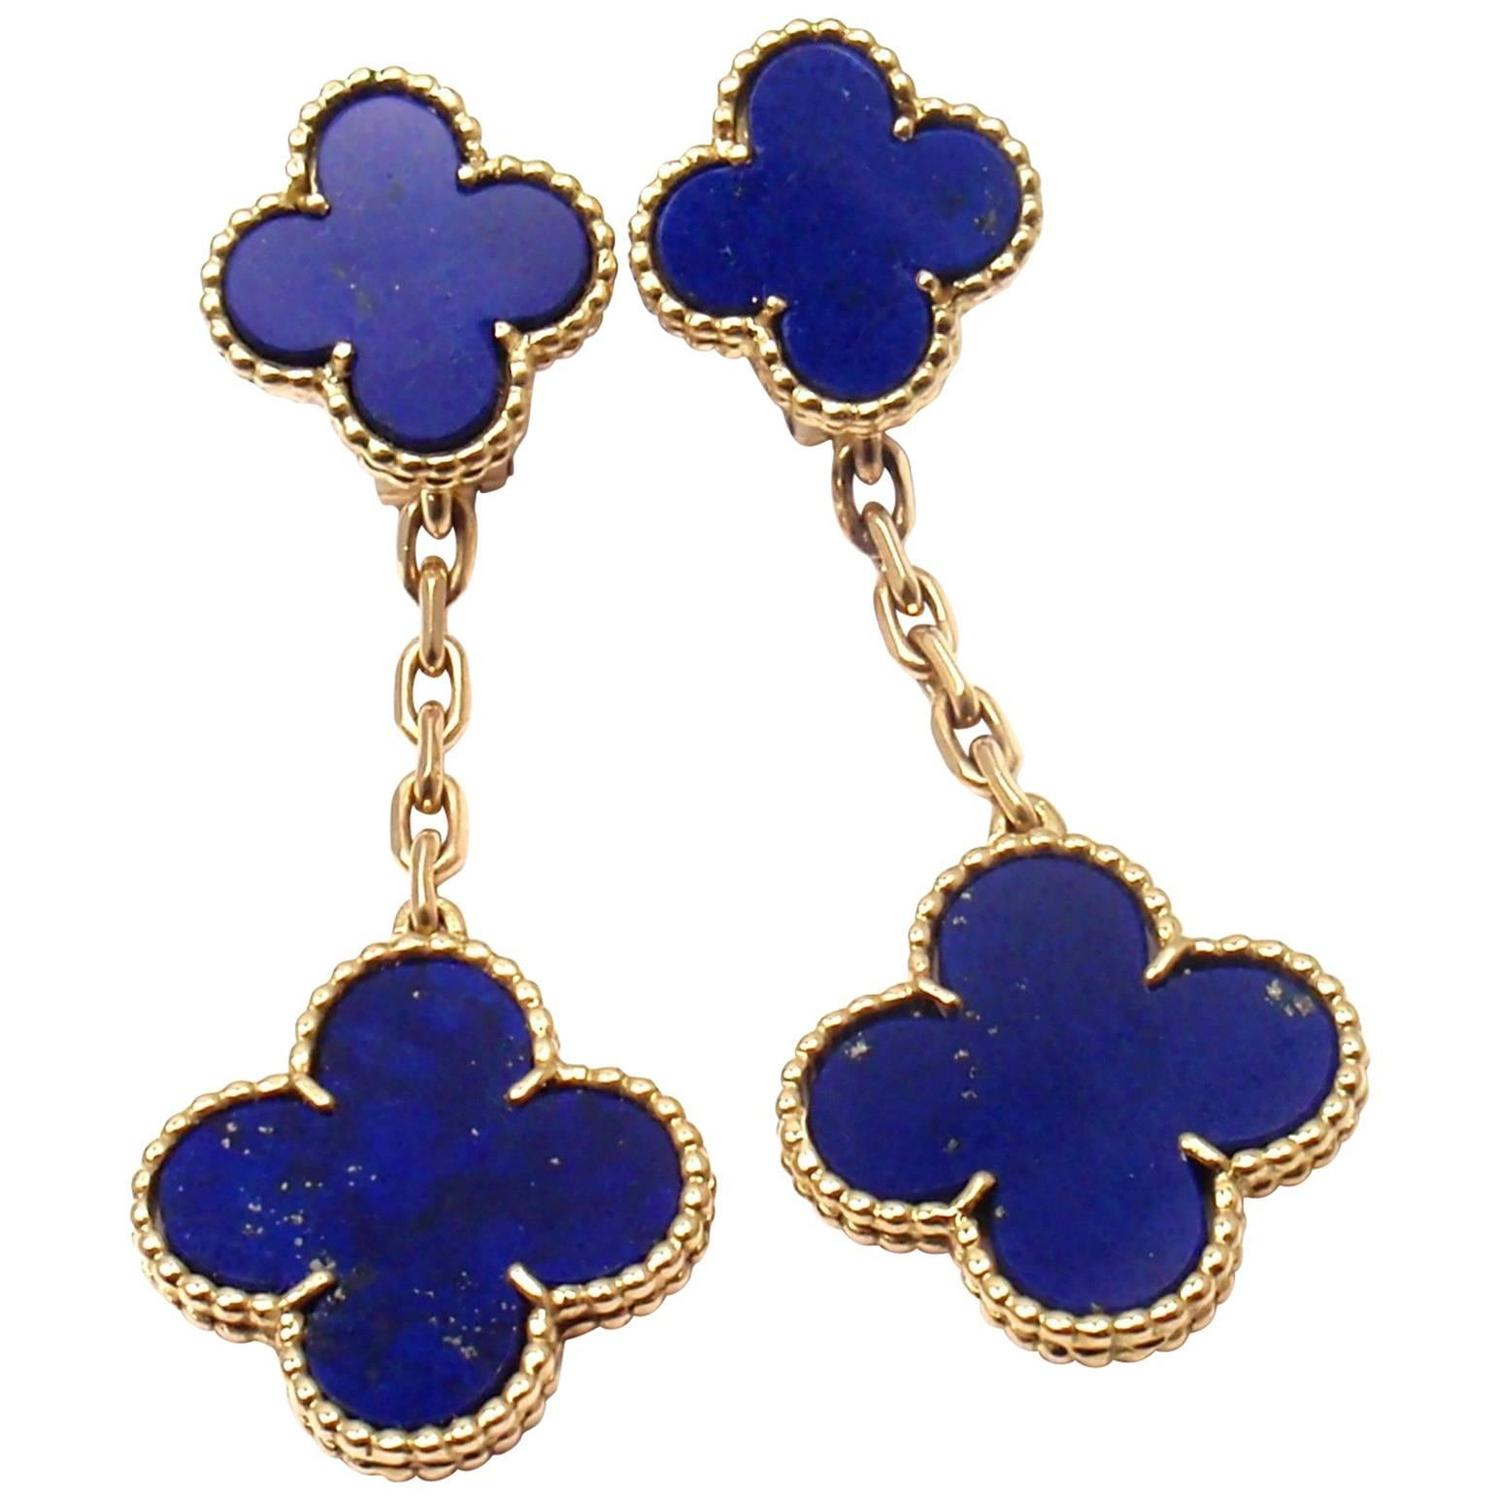 class largelapisstuds product classp the earrings store studs large lapis s design petra